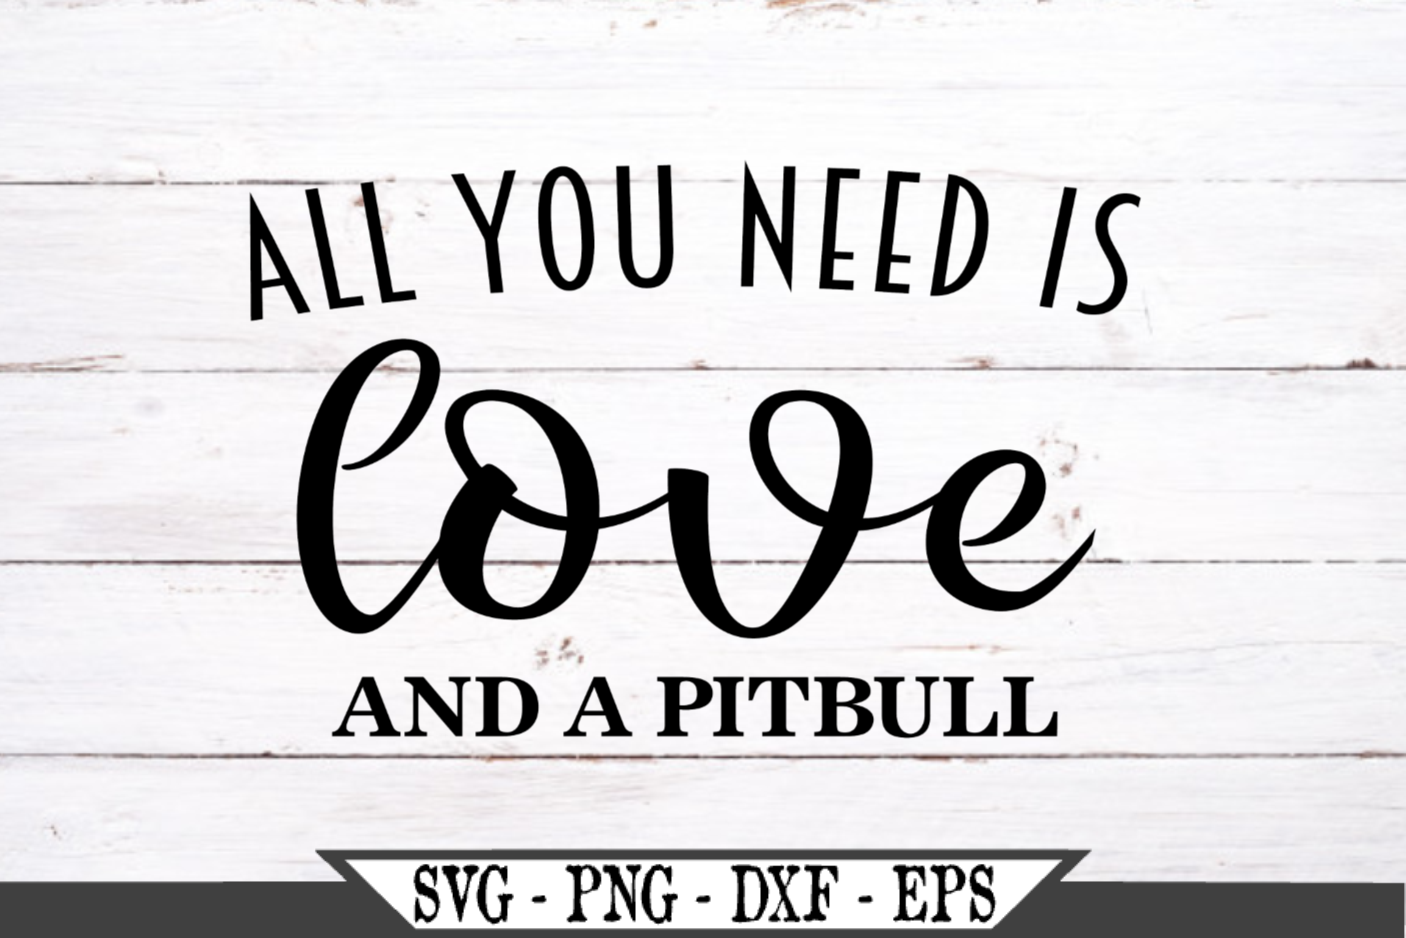 All You Need Is Love And A Pitbull Dog SVG example image 2